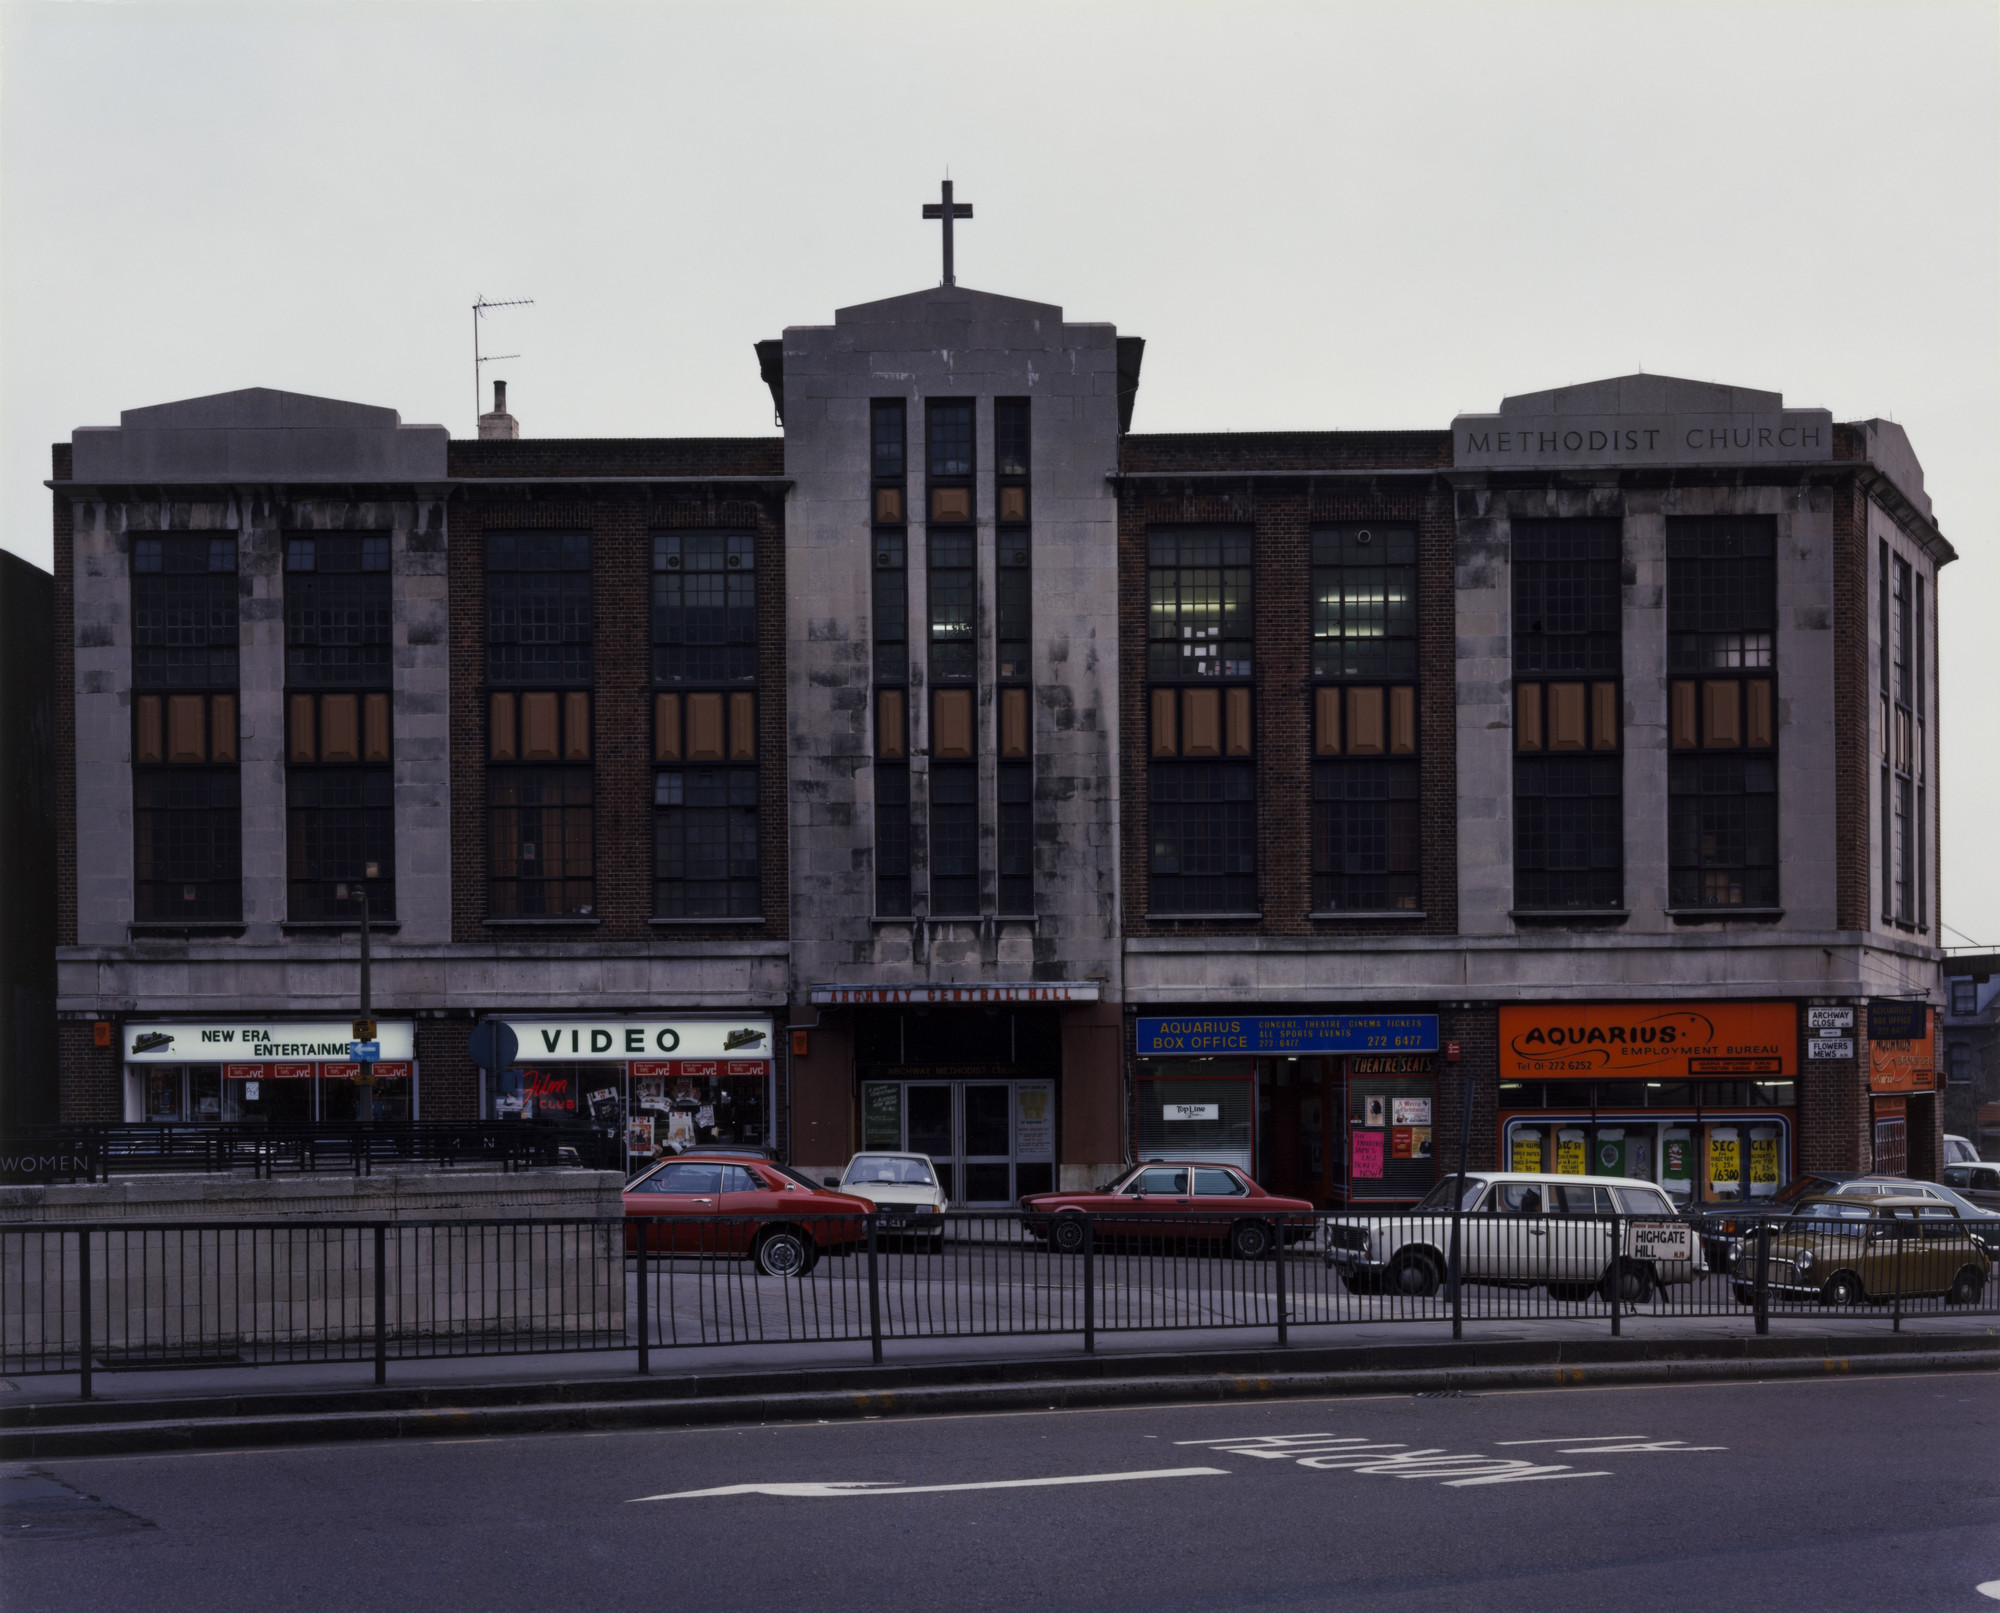 Paul Graham. Old Methodist Church, Archway, North London from the portfolio A1: The Great North Road. November 1982 | MoMA